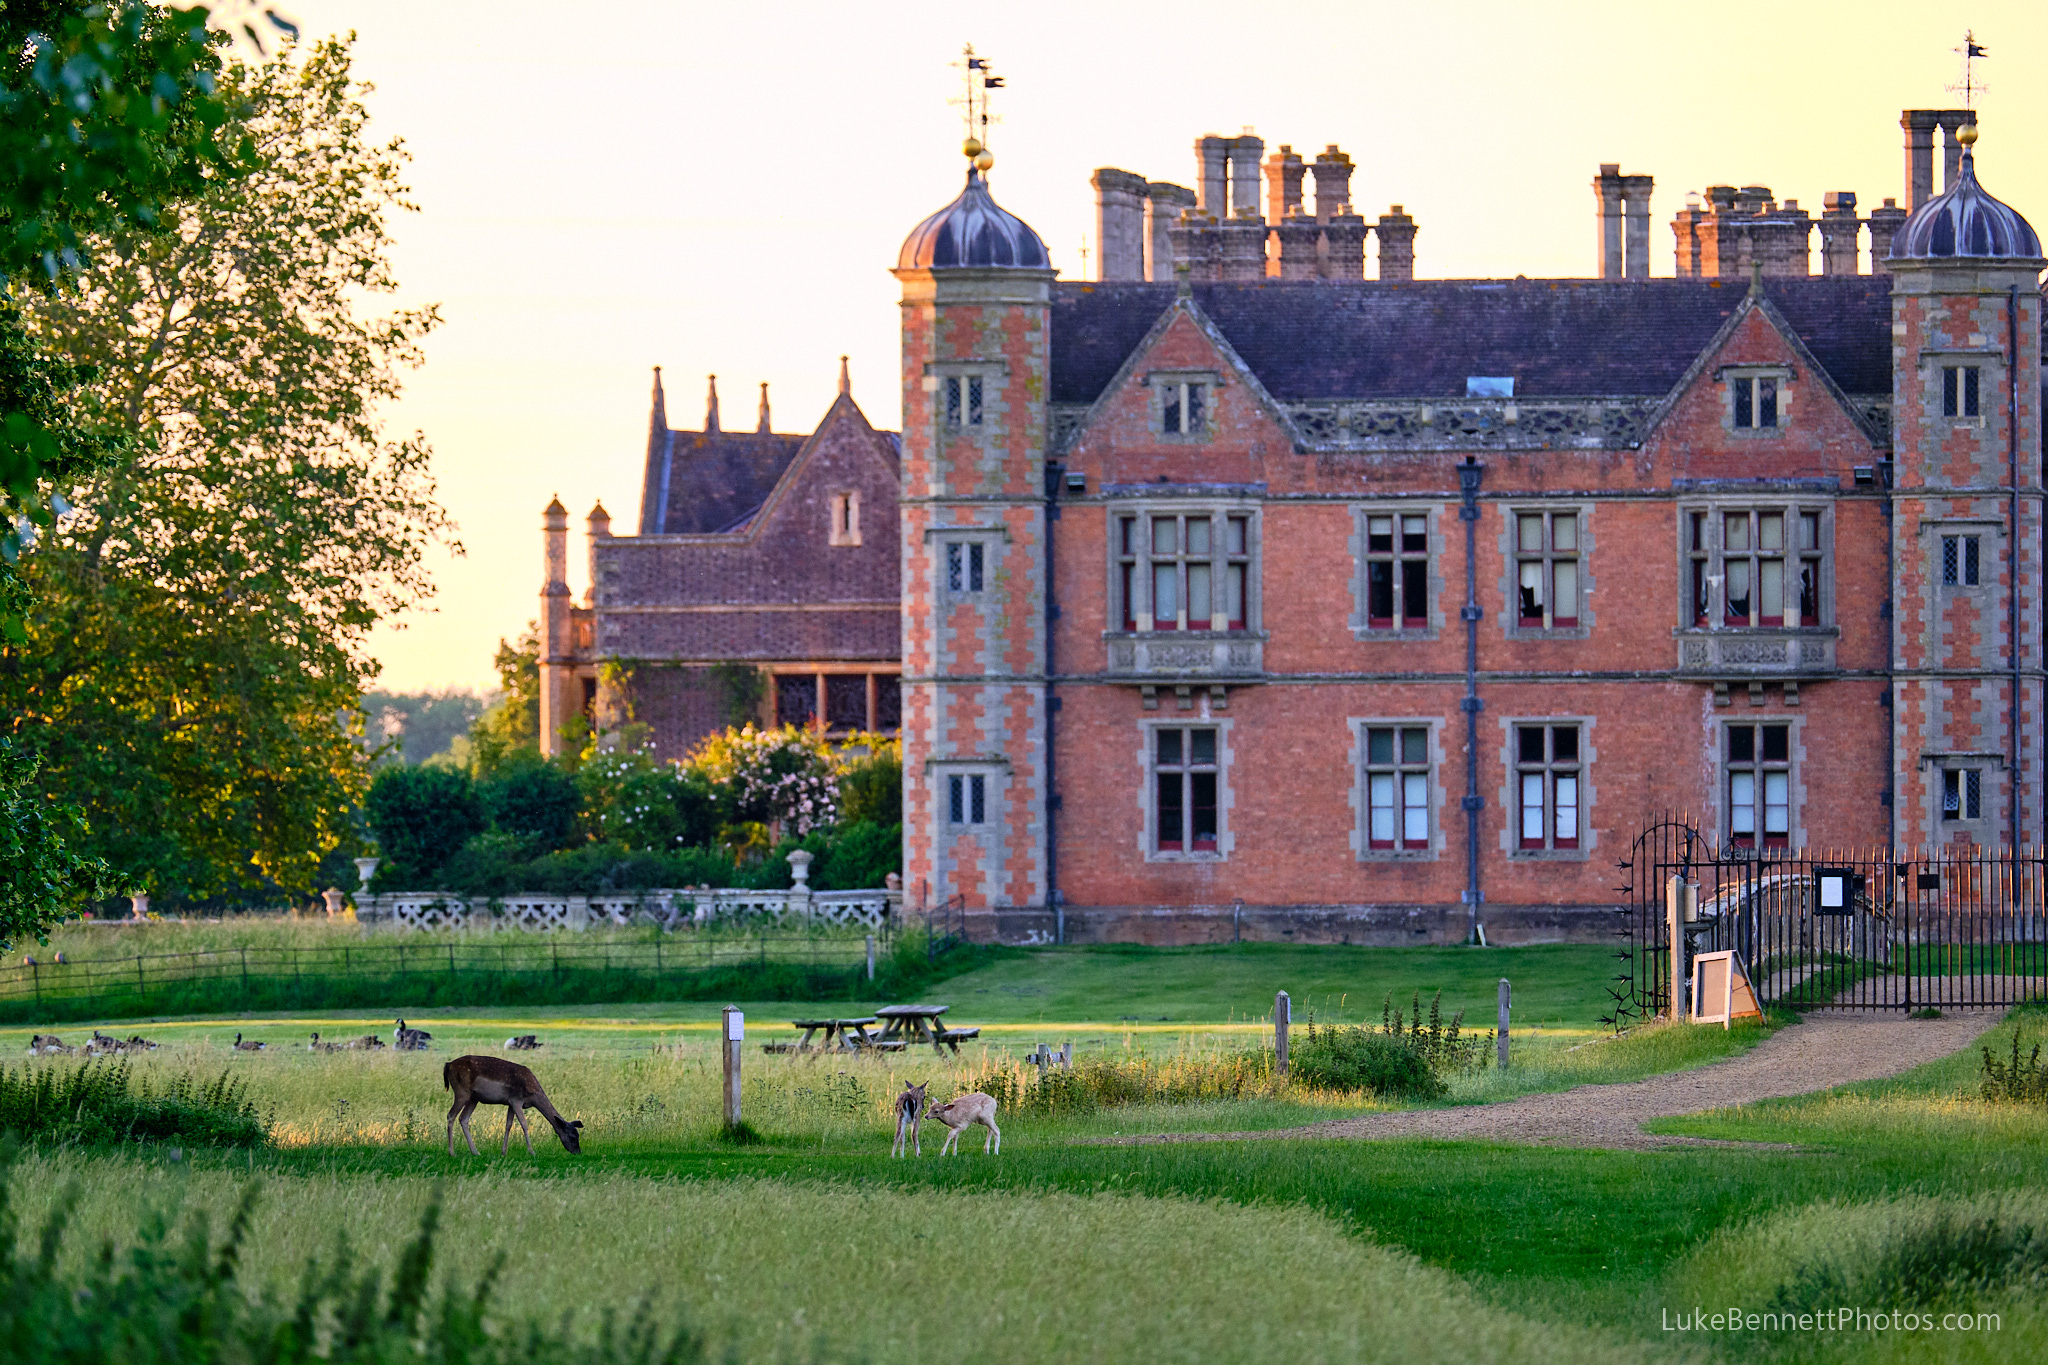 Young deer at play in front of Charlecote House